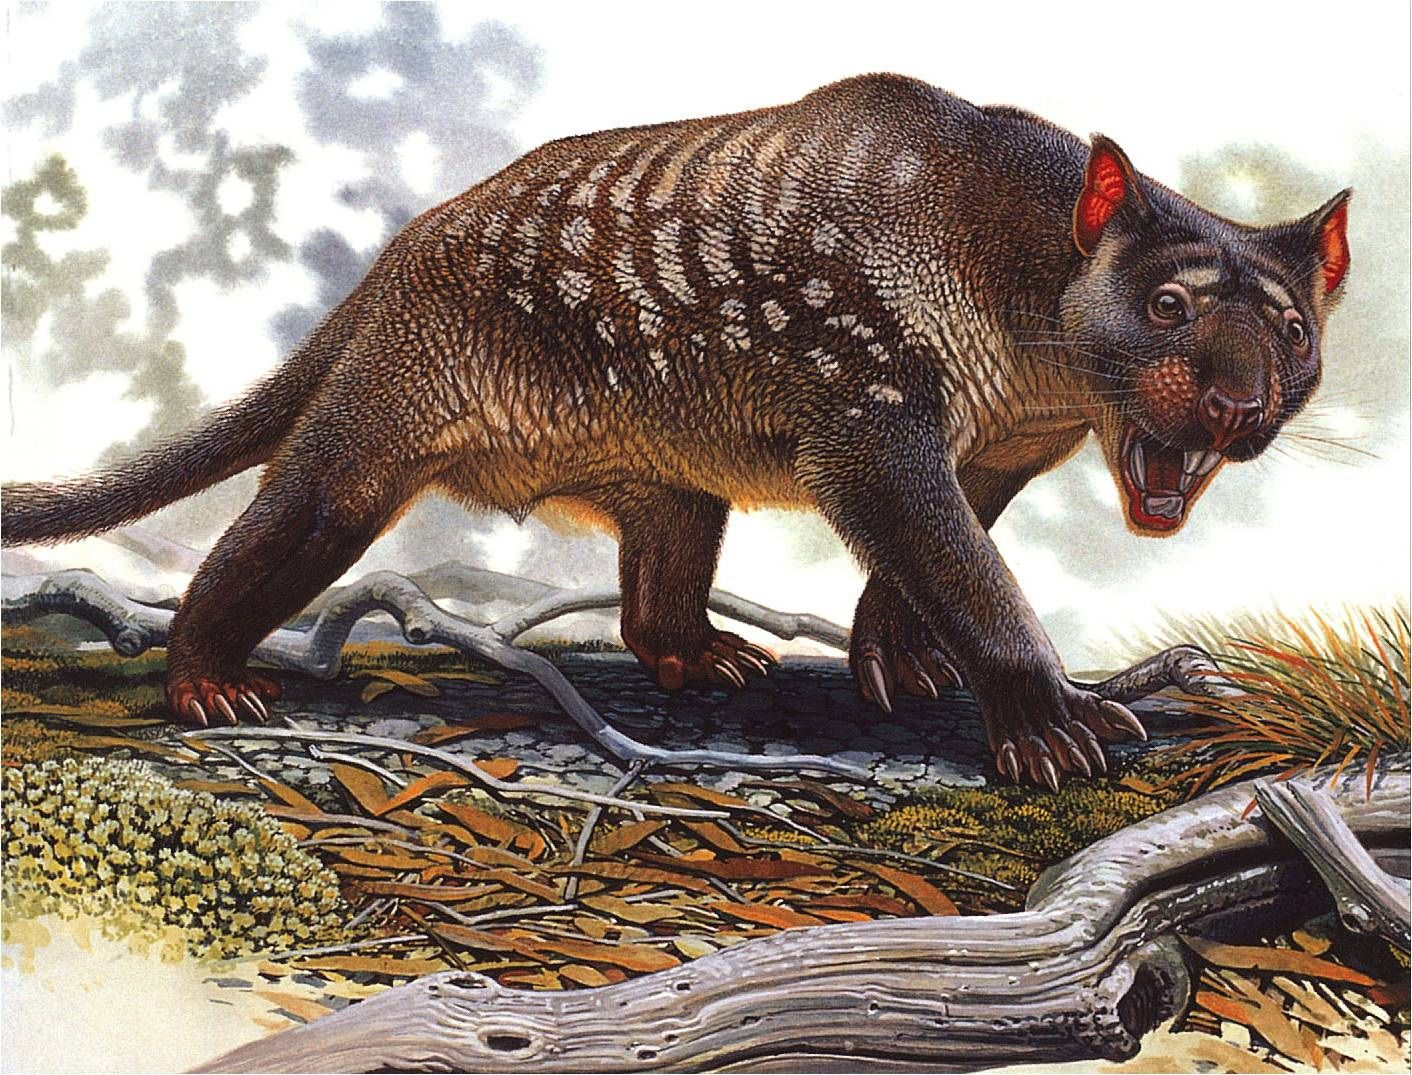 Thylacoleo carnifex was smaller than an African lioness, but with 80 per cent as powerful a bite as a large African lion. Picture: Peter Schouten